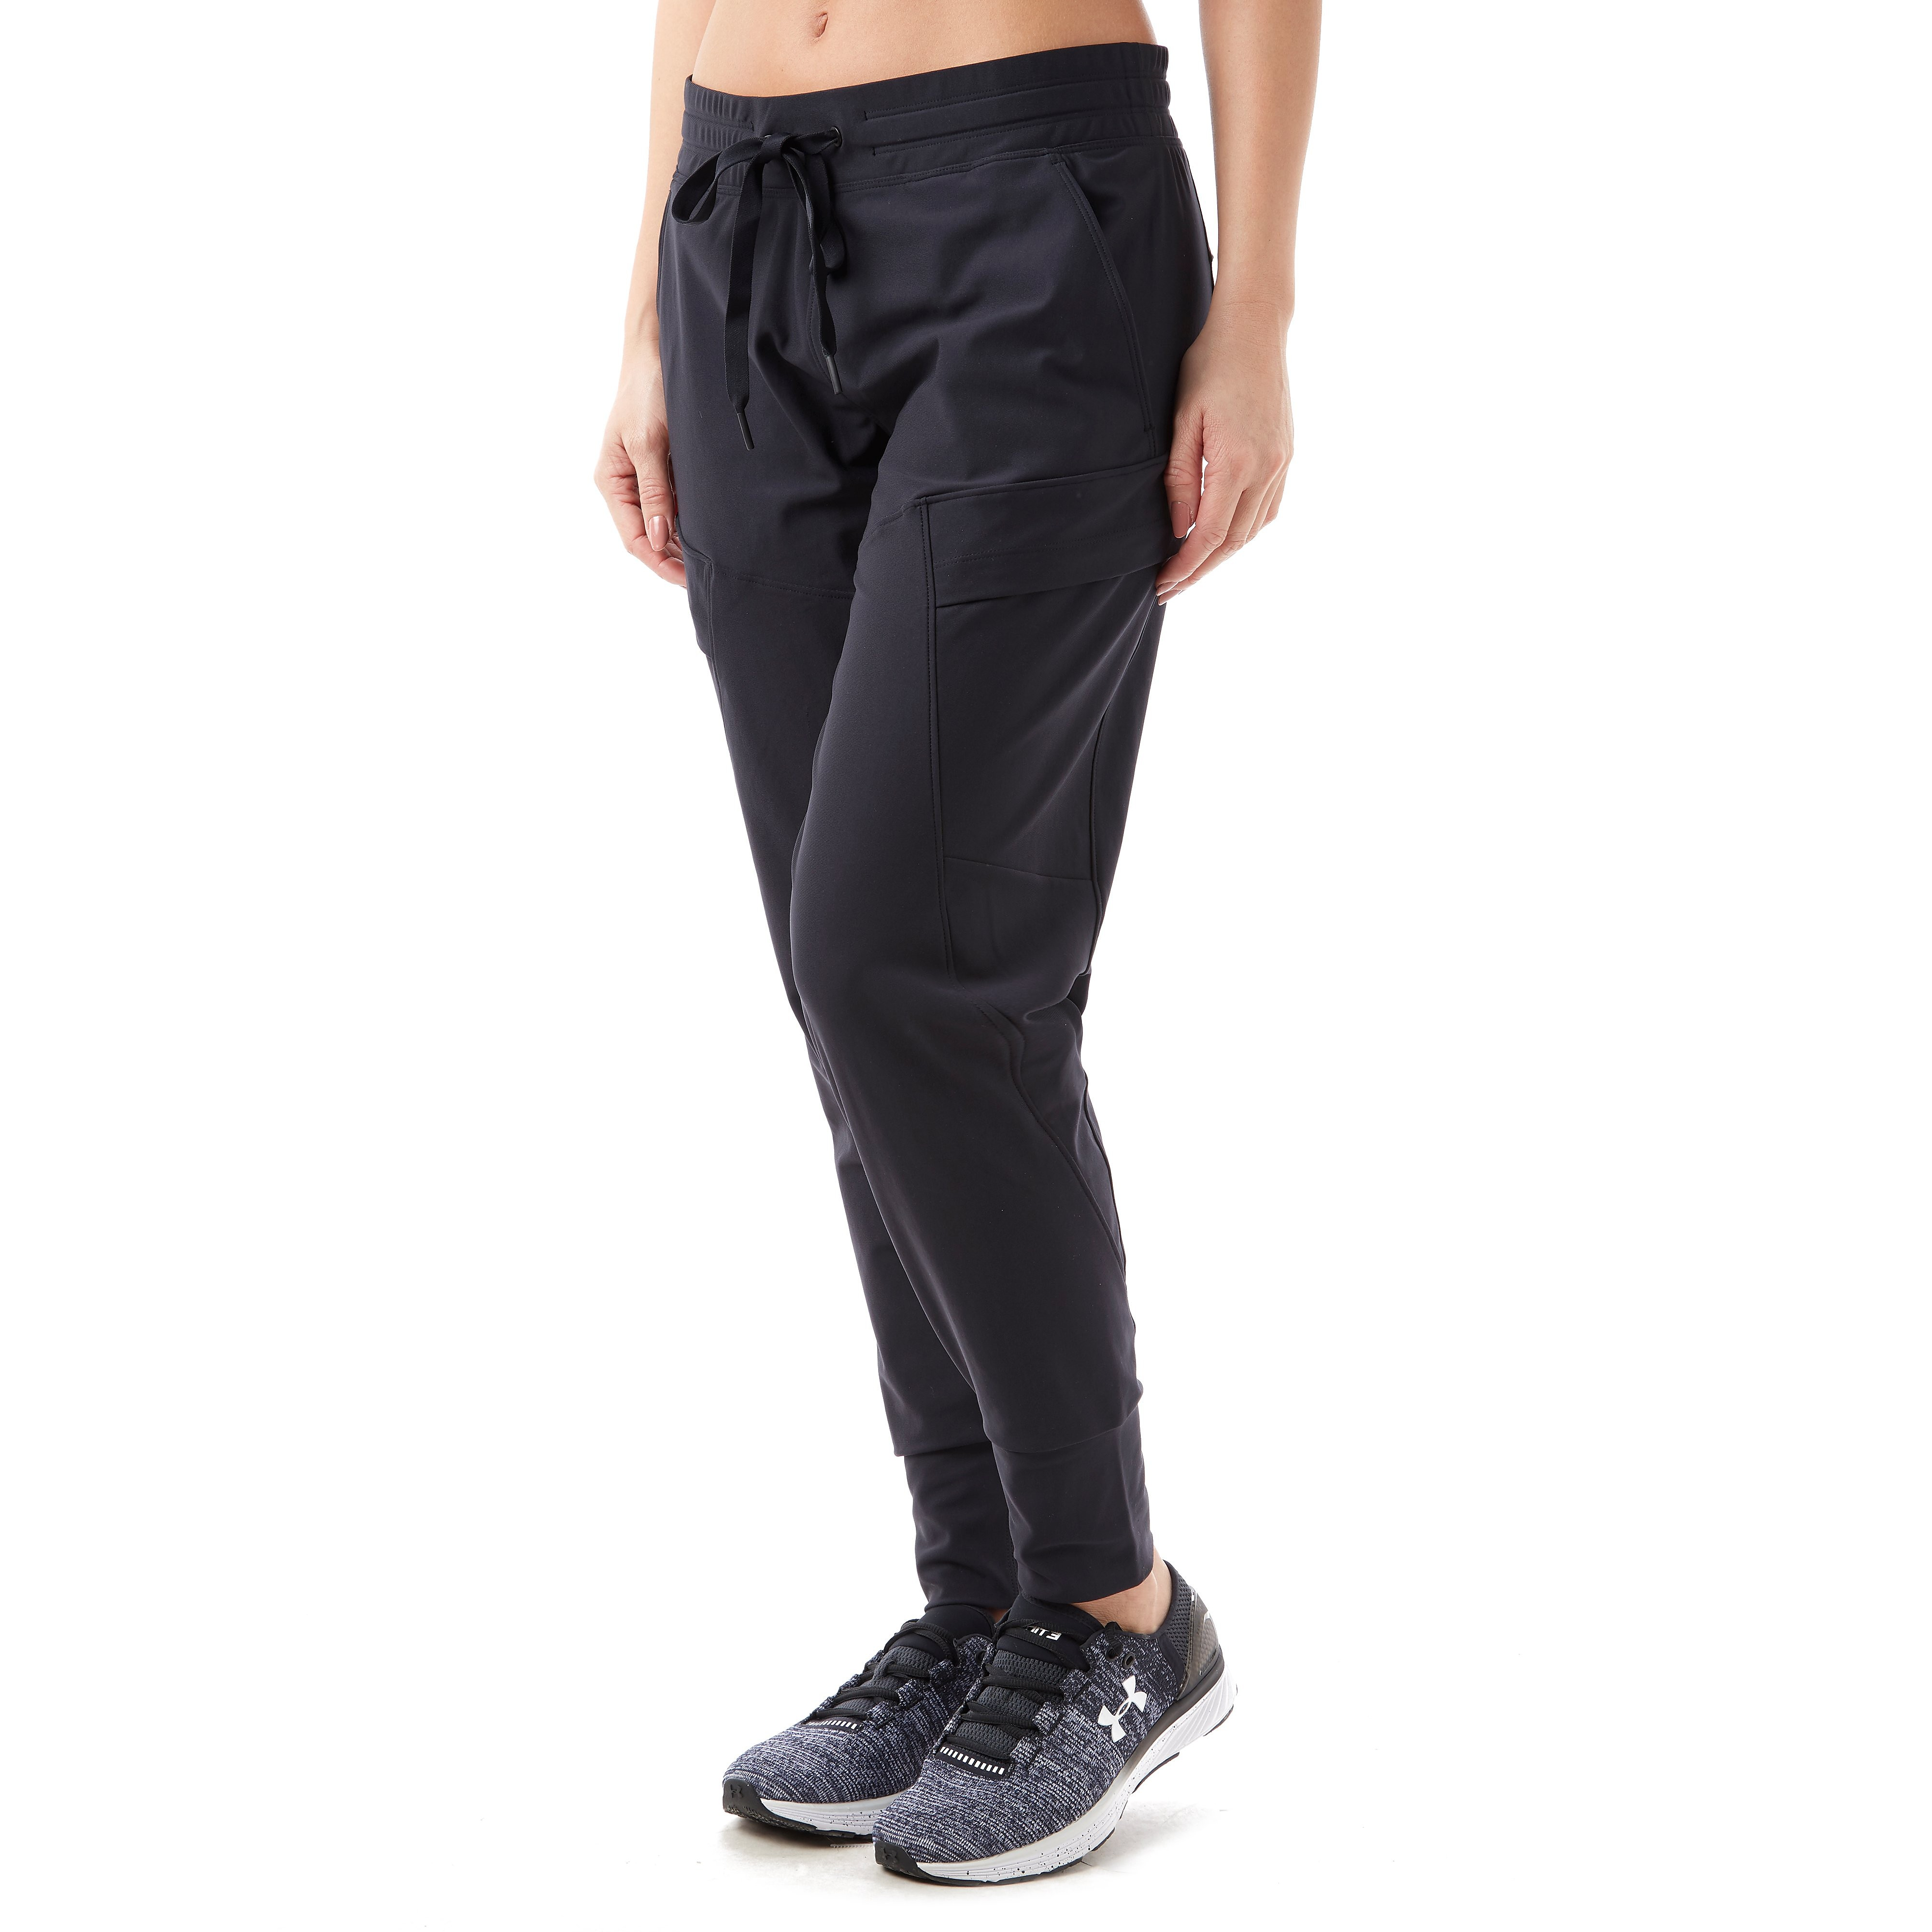 Women's Under Armour UA Perpetual Loose Training Pants - Black, Black